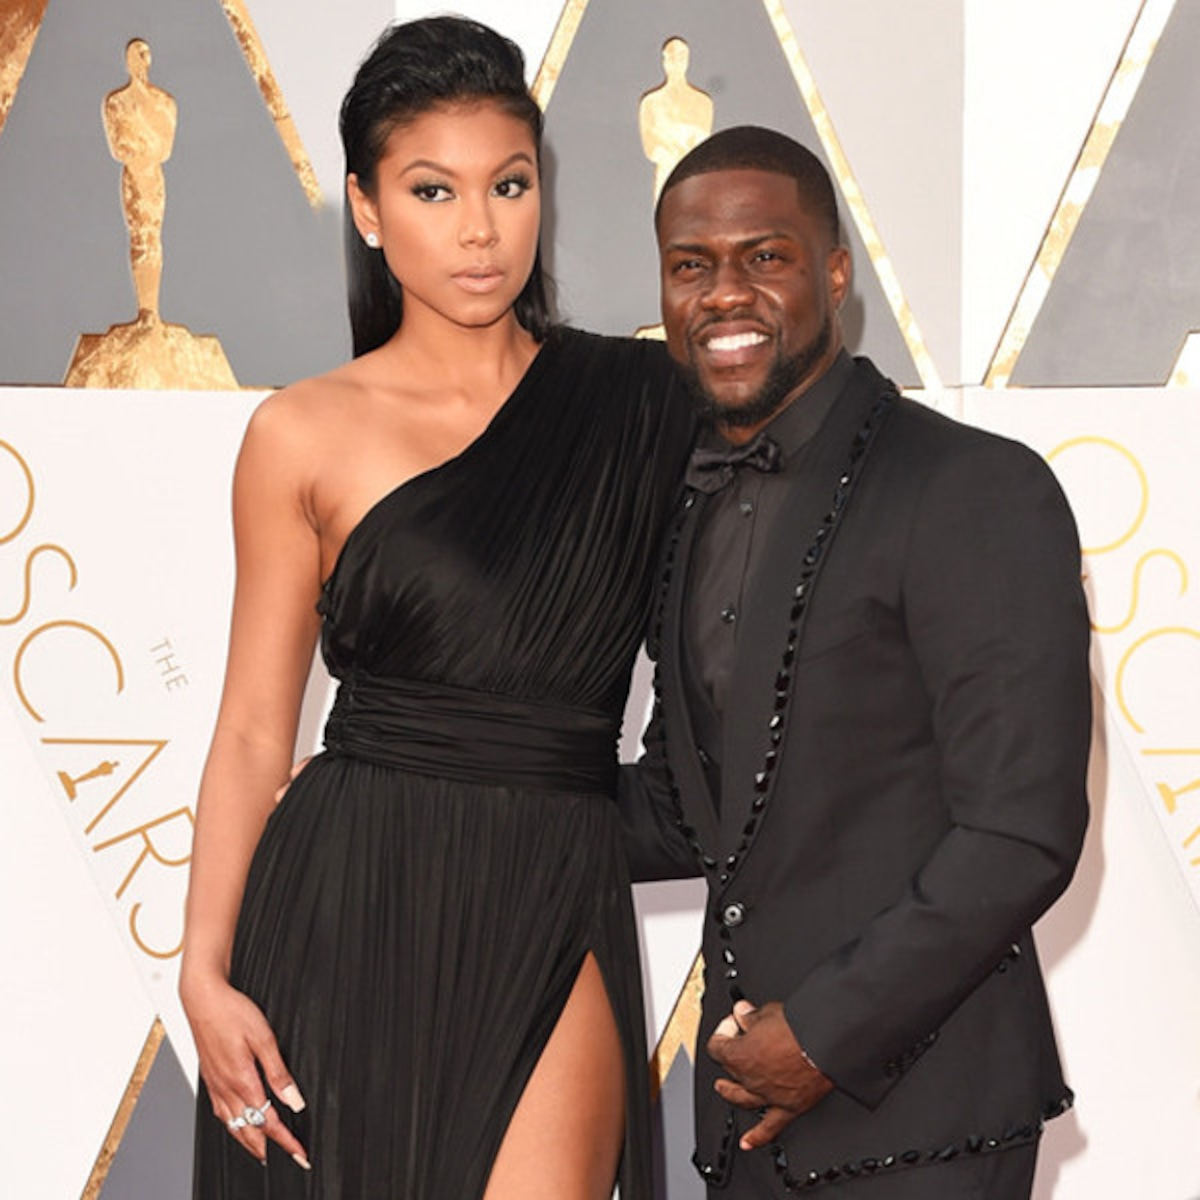 Kevin Hart Says He Is a Better Man After Cheating